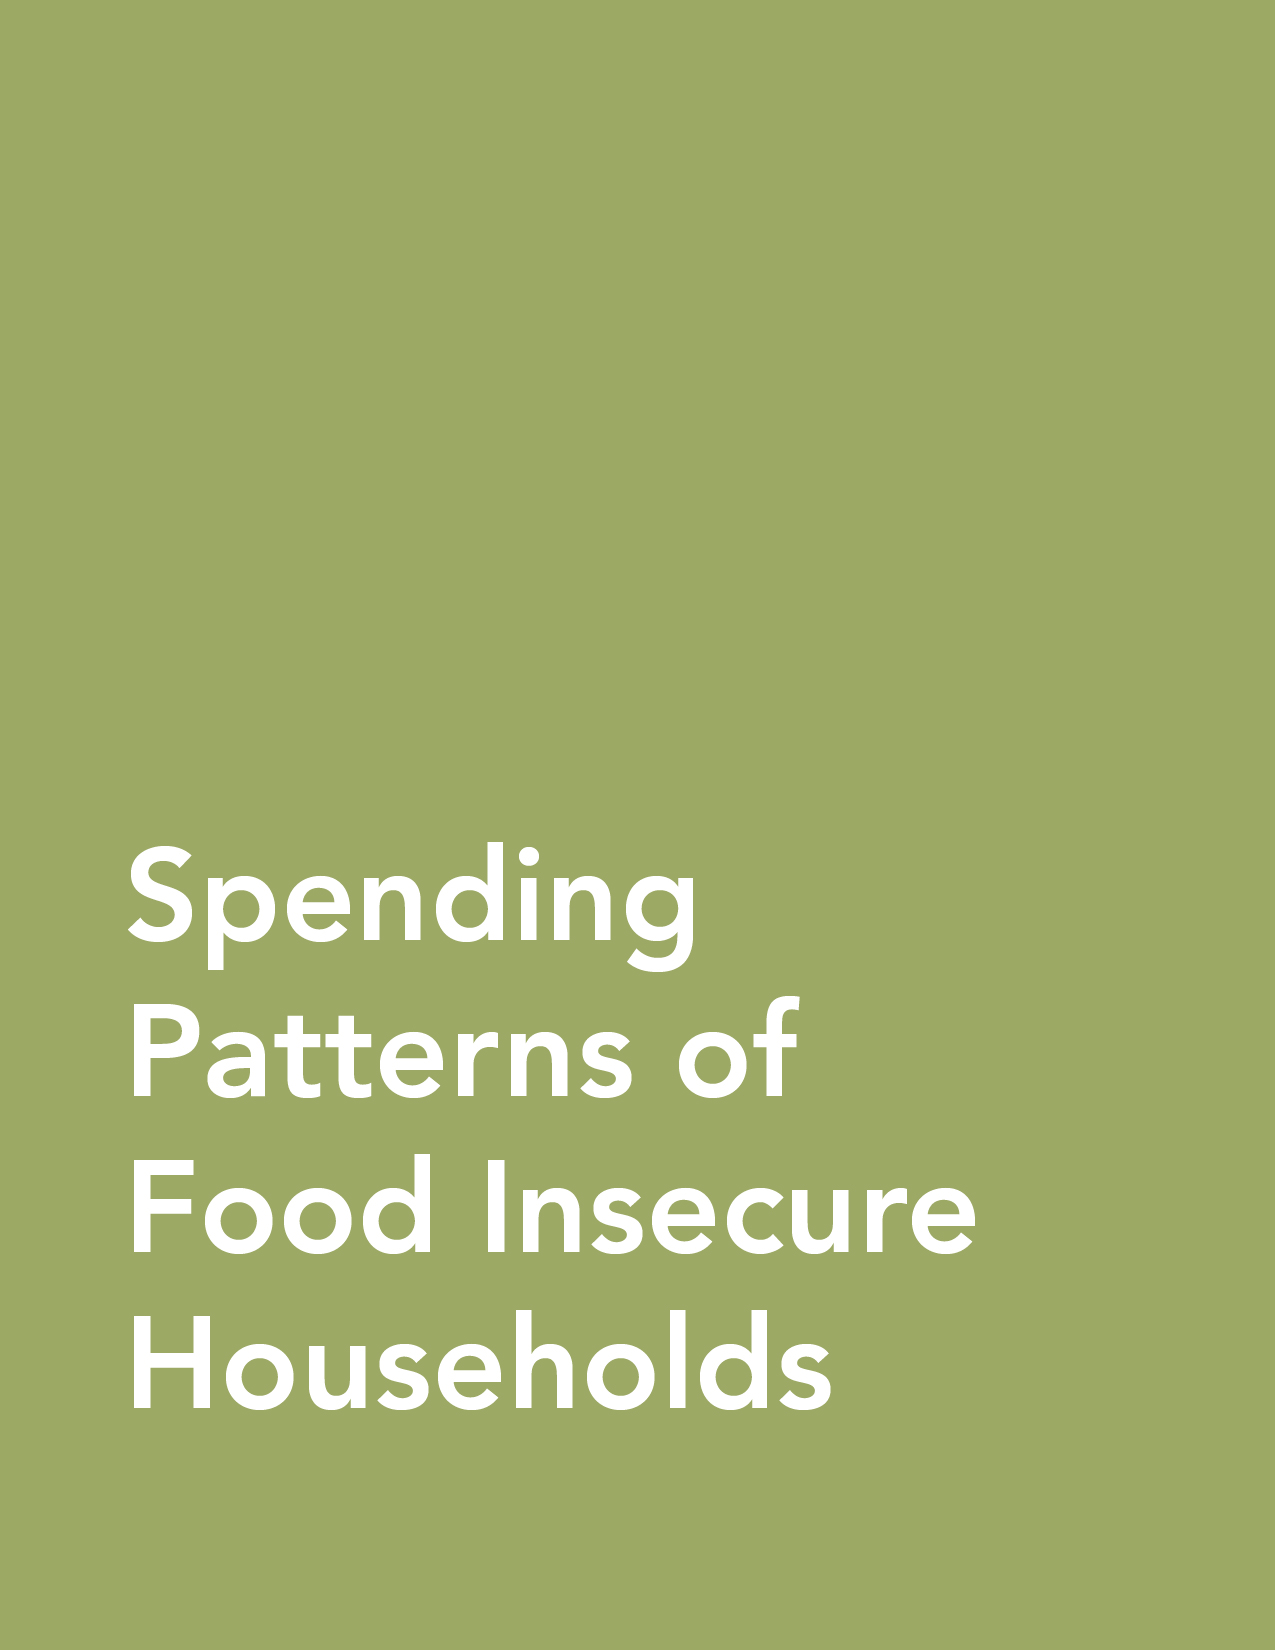 Fact Sheet: Spending Patterns of Food Insecure Households